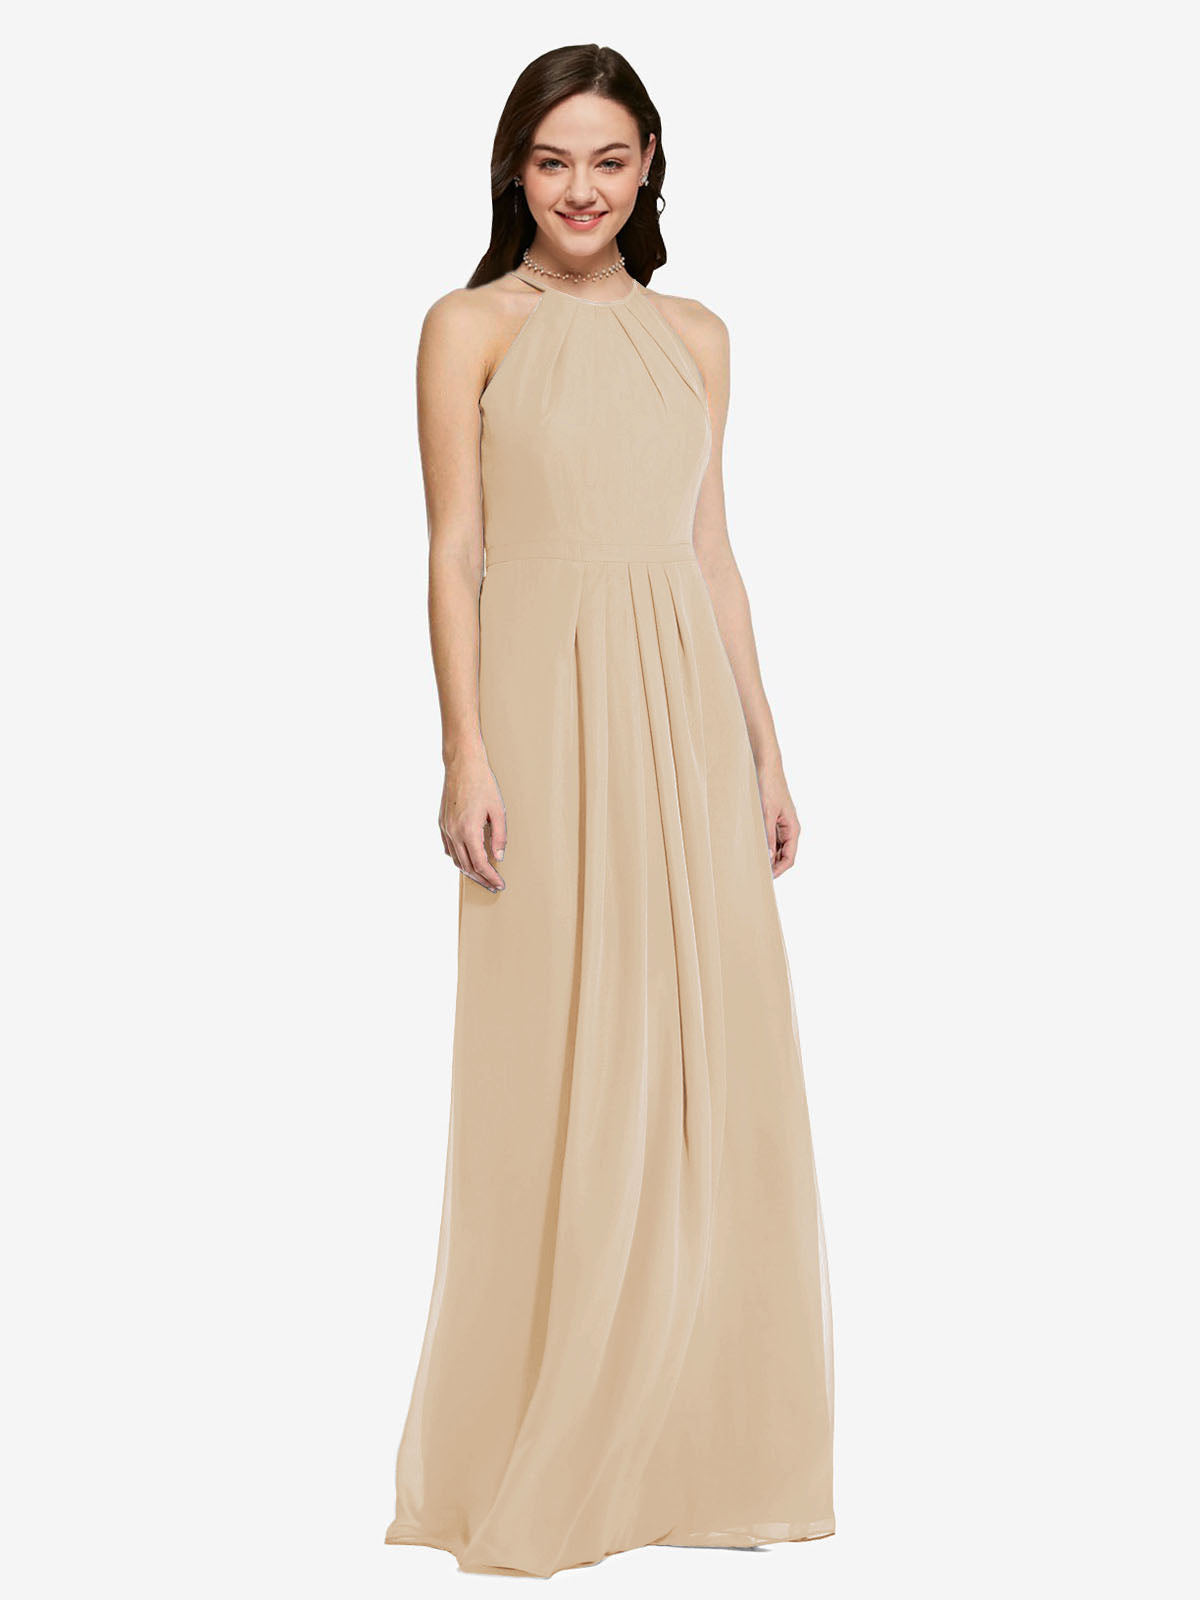 Long Sheath High Neck Halter Sleeveless Champagne Chiffon Bridesmaid Dress Koloti